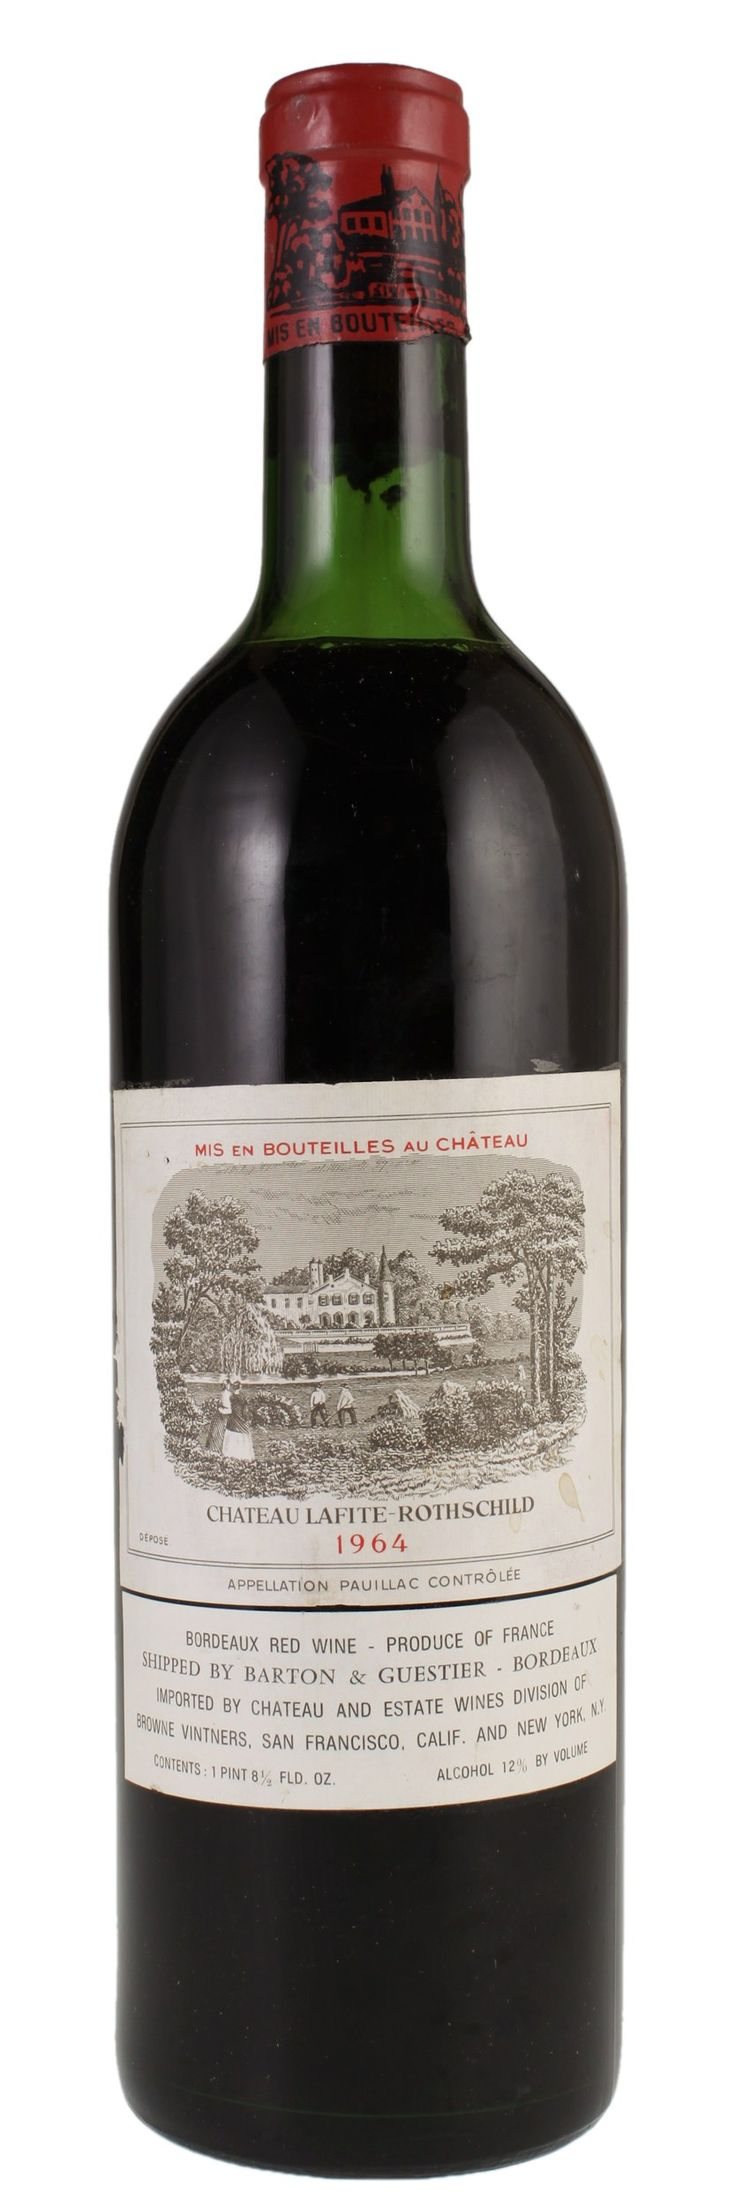 1964 Chateau Lafite-Rothschild Bordeaux